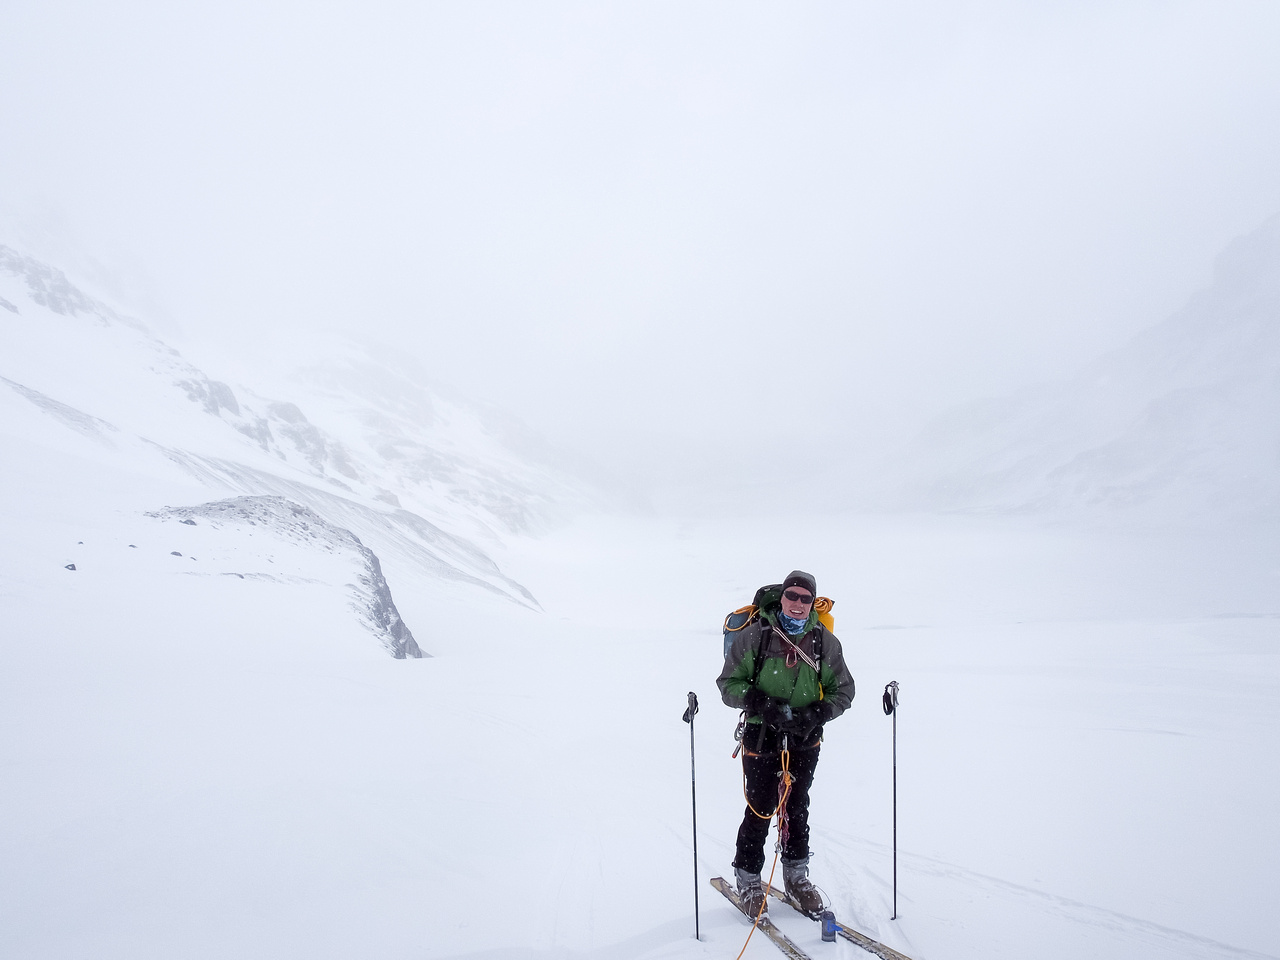 Past the seracs and part way up the ramp to the Columbia Glacier neve. We're still smiling at this point.